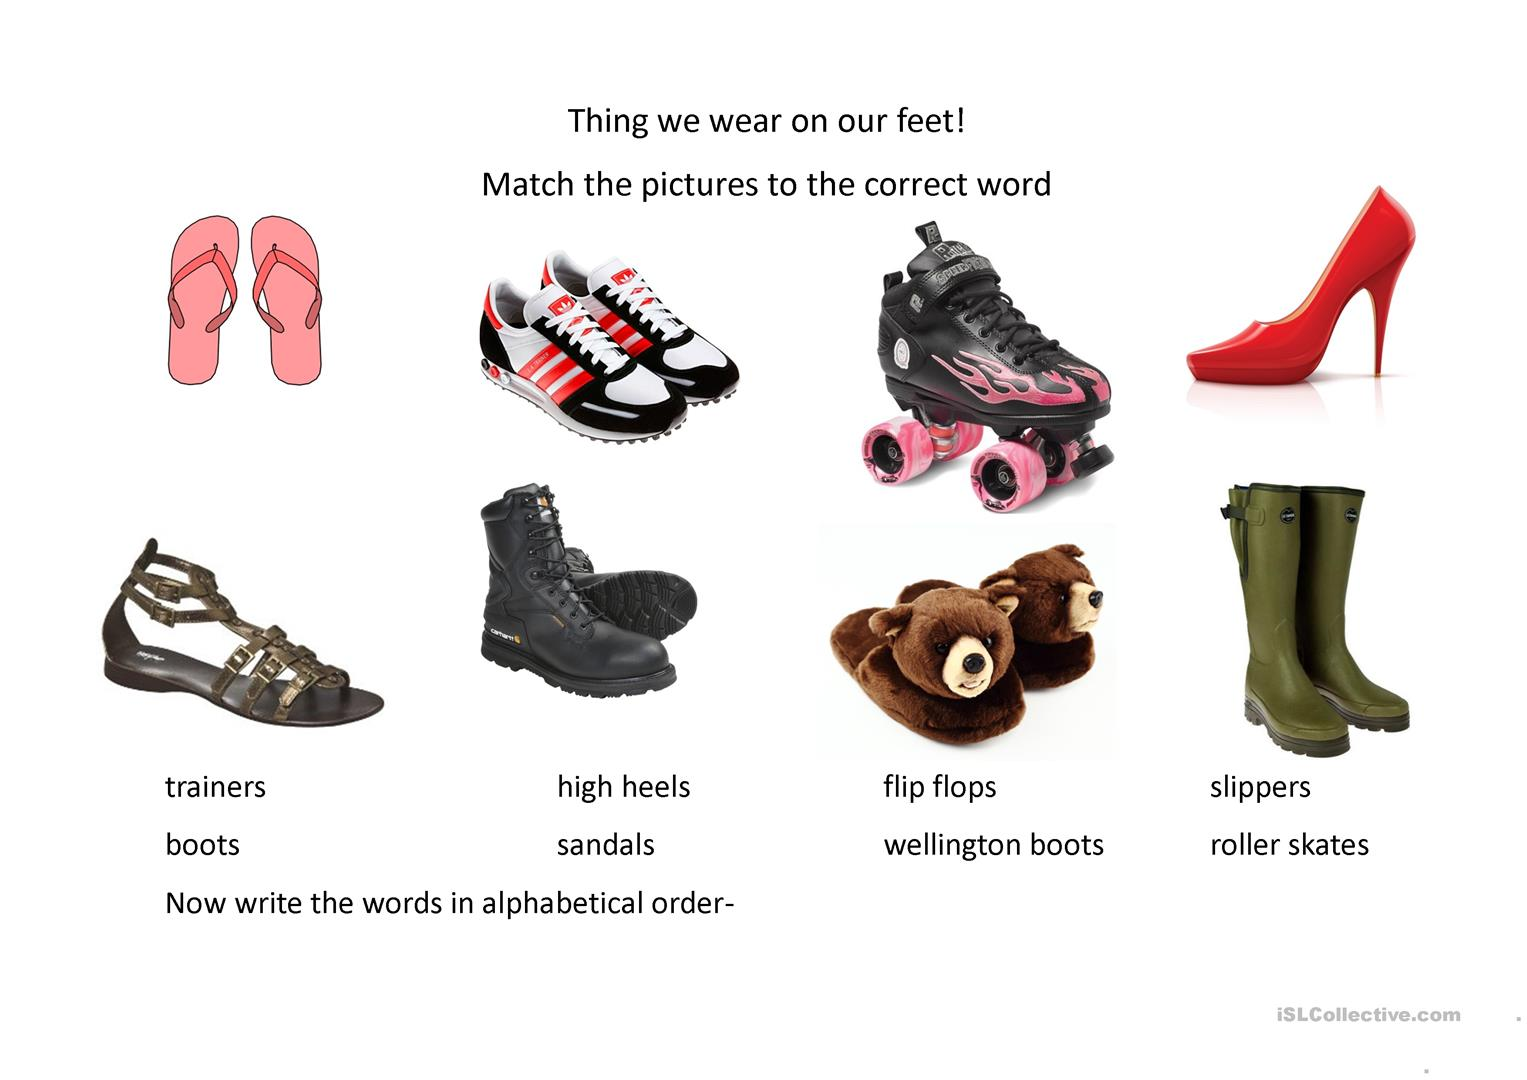 Footwear Shoes And Others